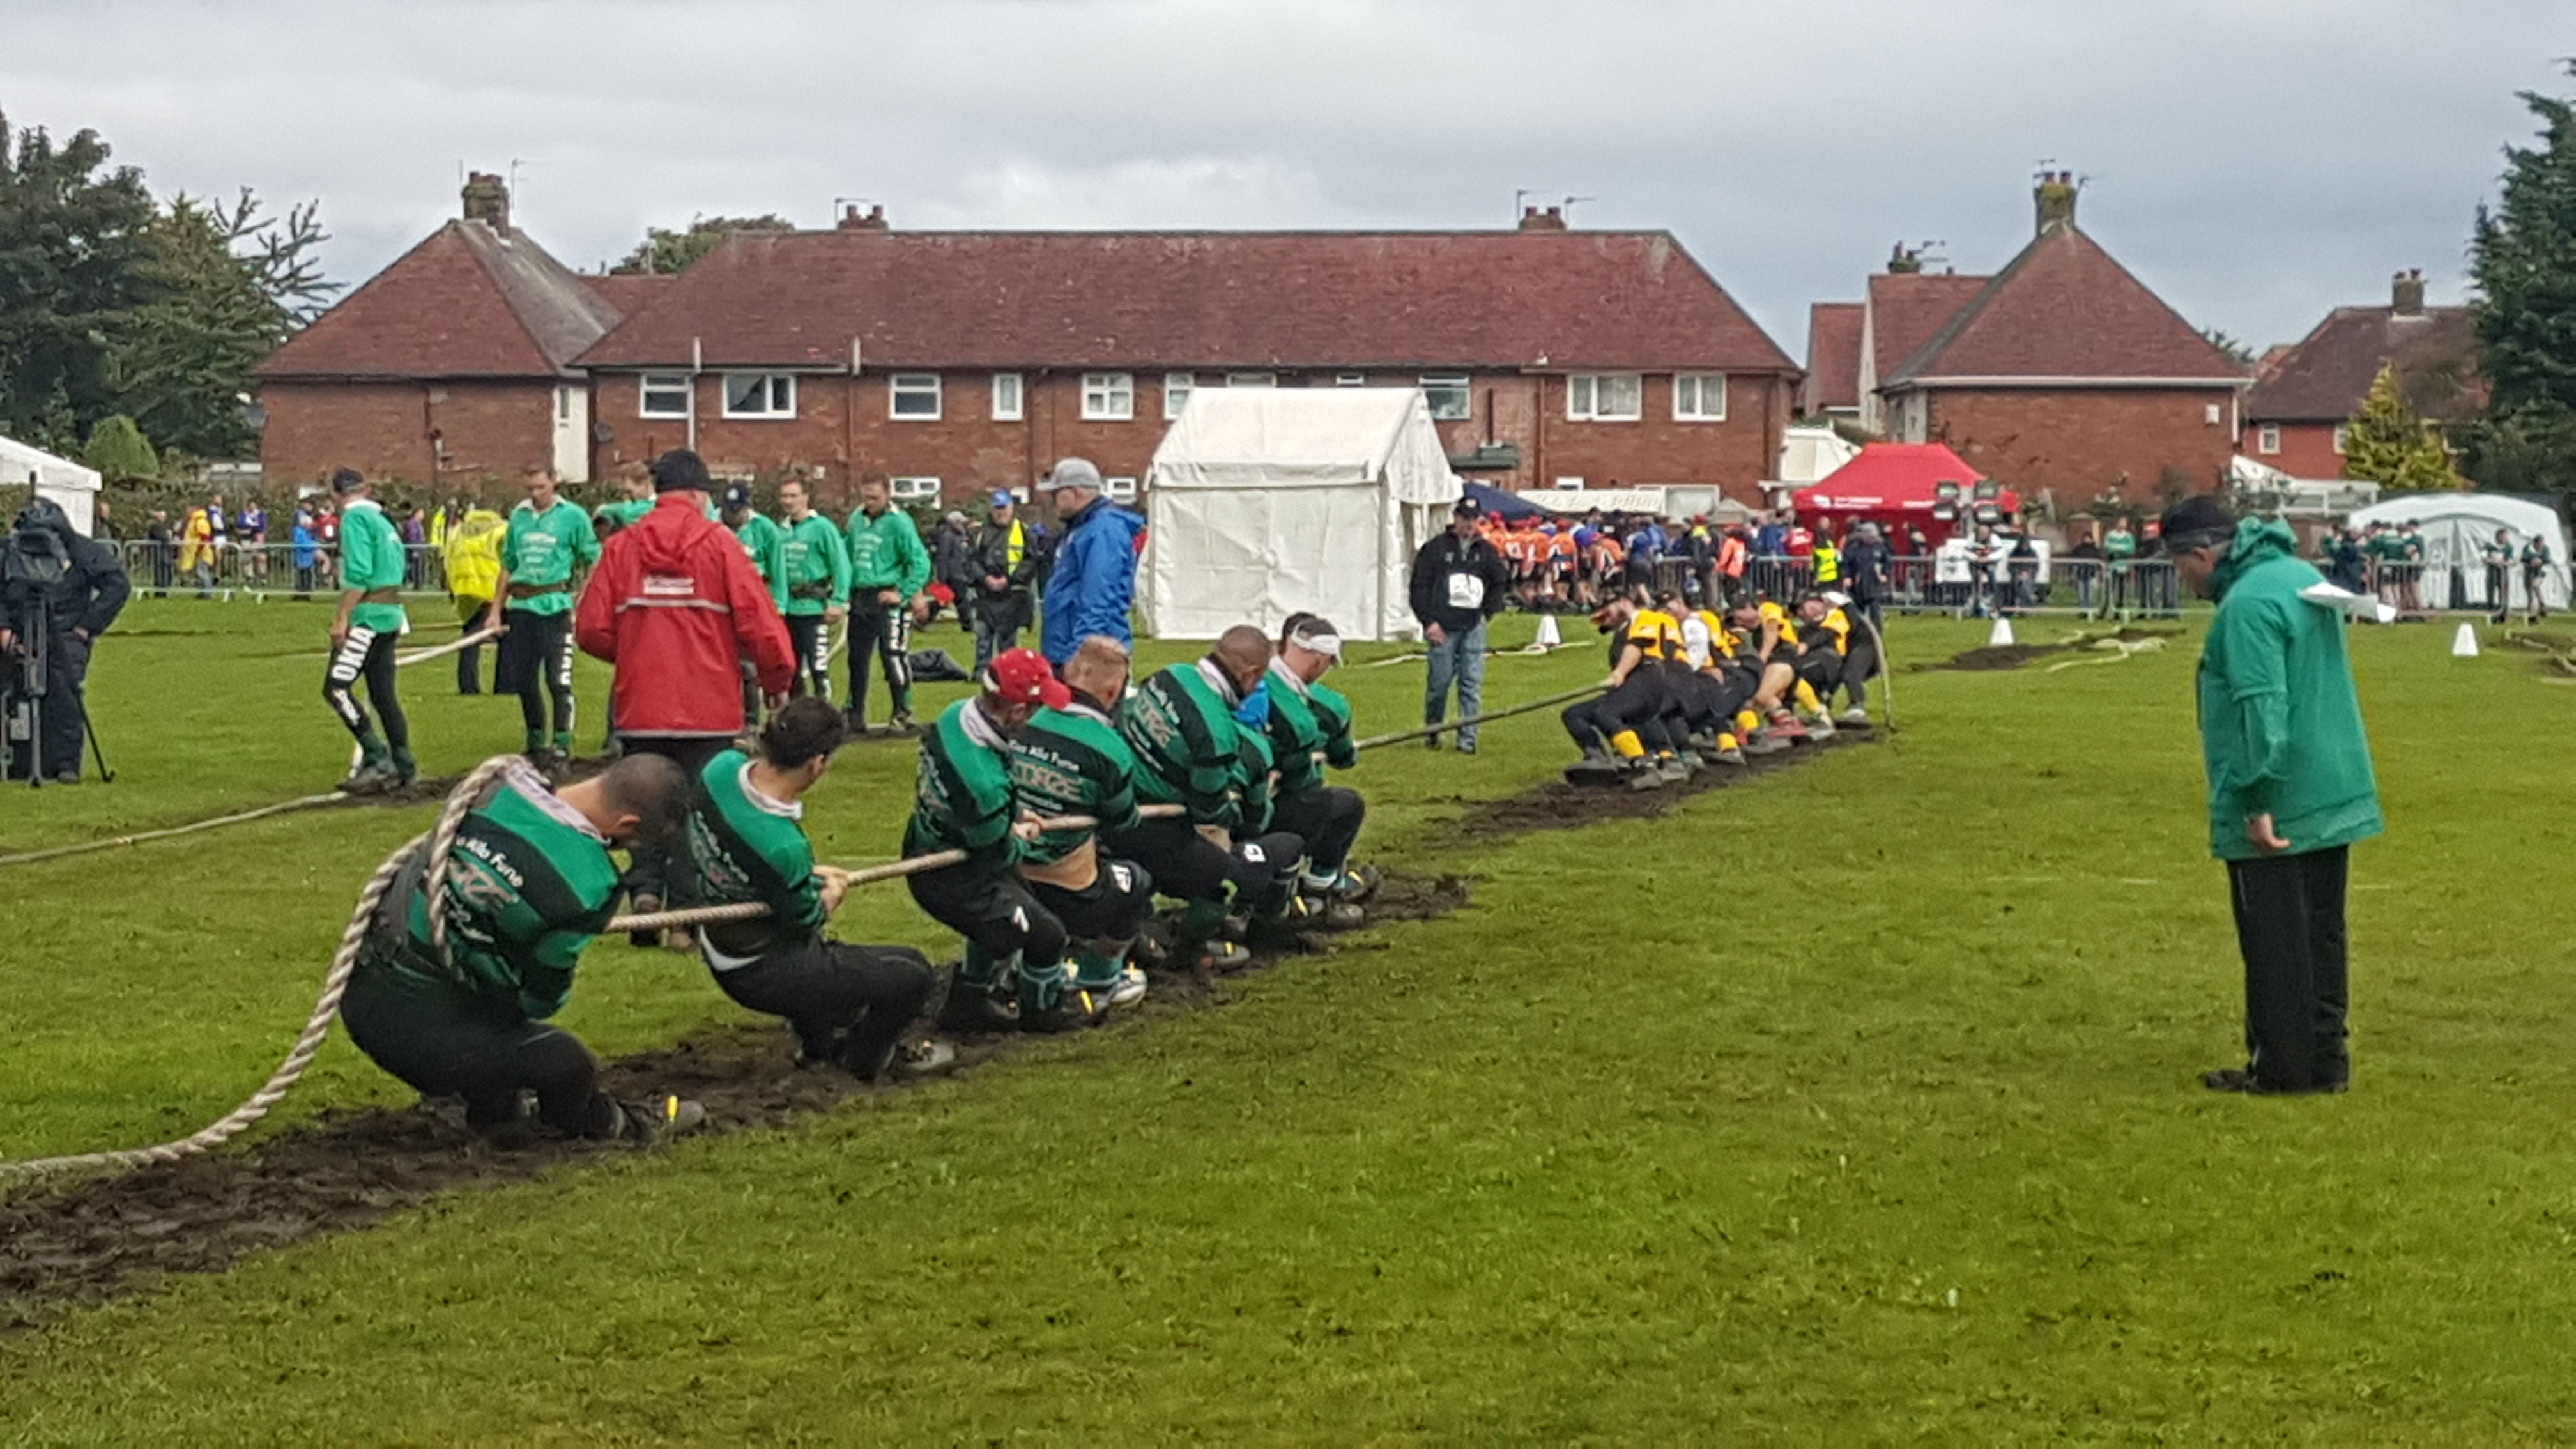 The European Tug of War Championships and World Junior and Under 23 Championships are underway at Carr Lane playing fields.    Dozens of teams are competing in the event.       ...